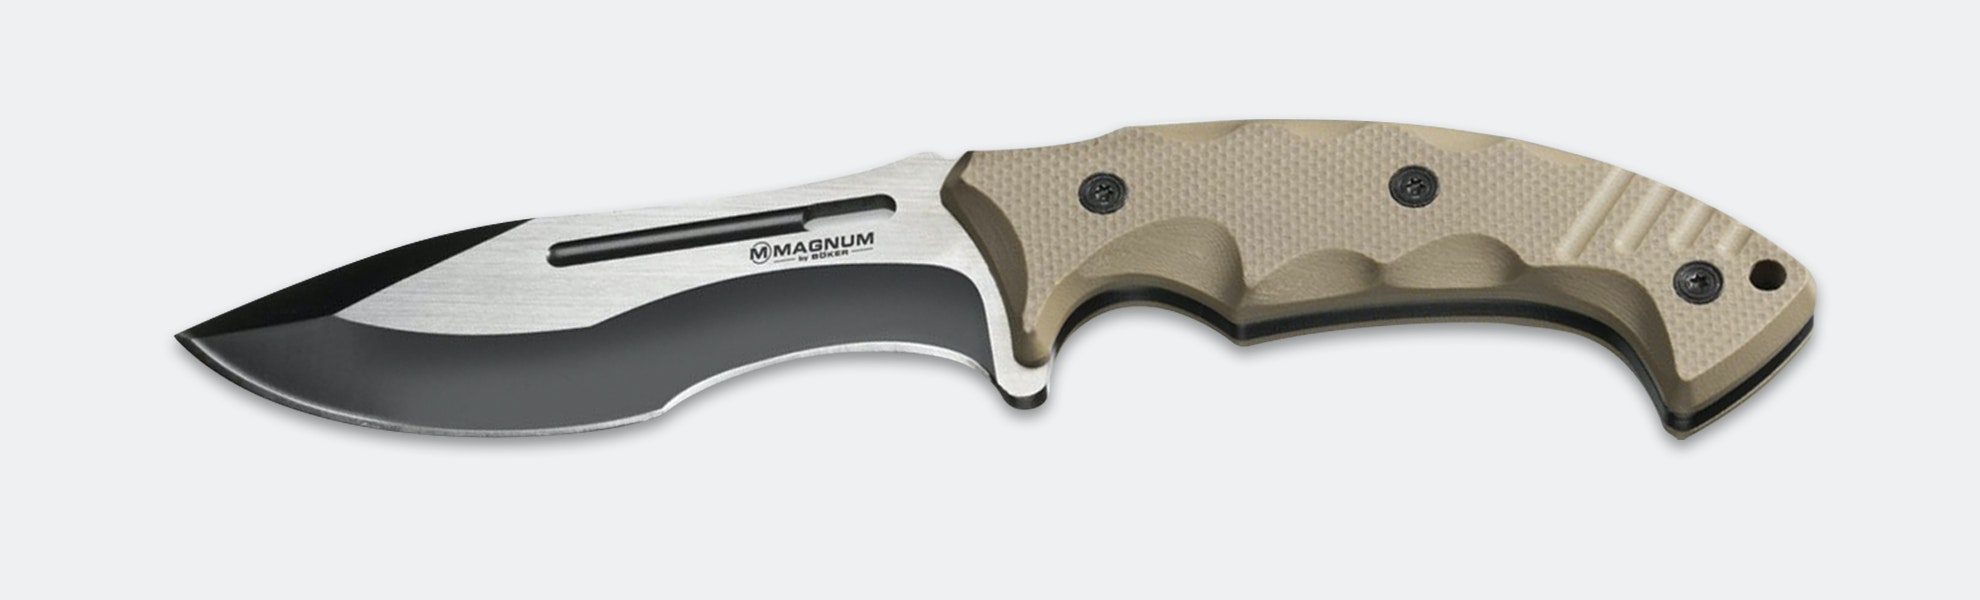 Boker Magnum Joint Adventure Fixed Blade Knife